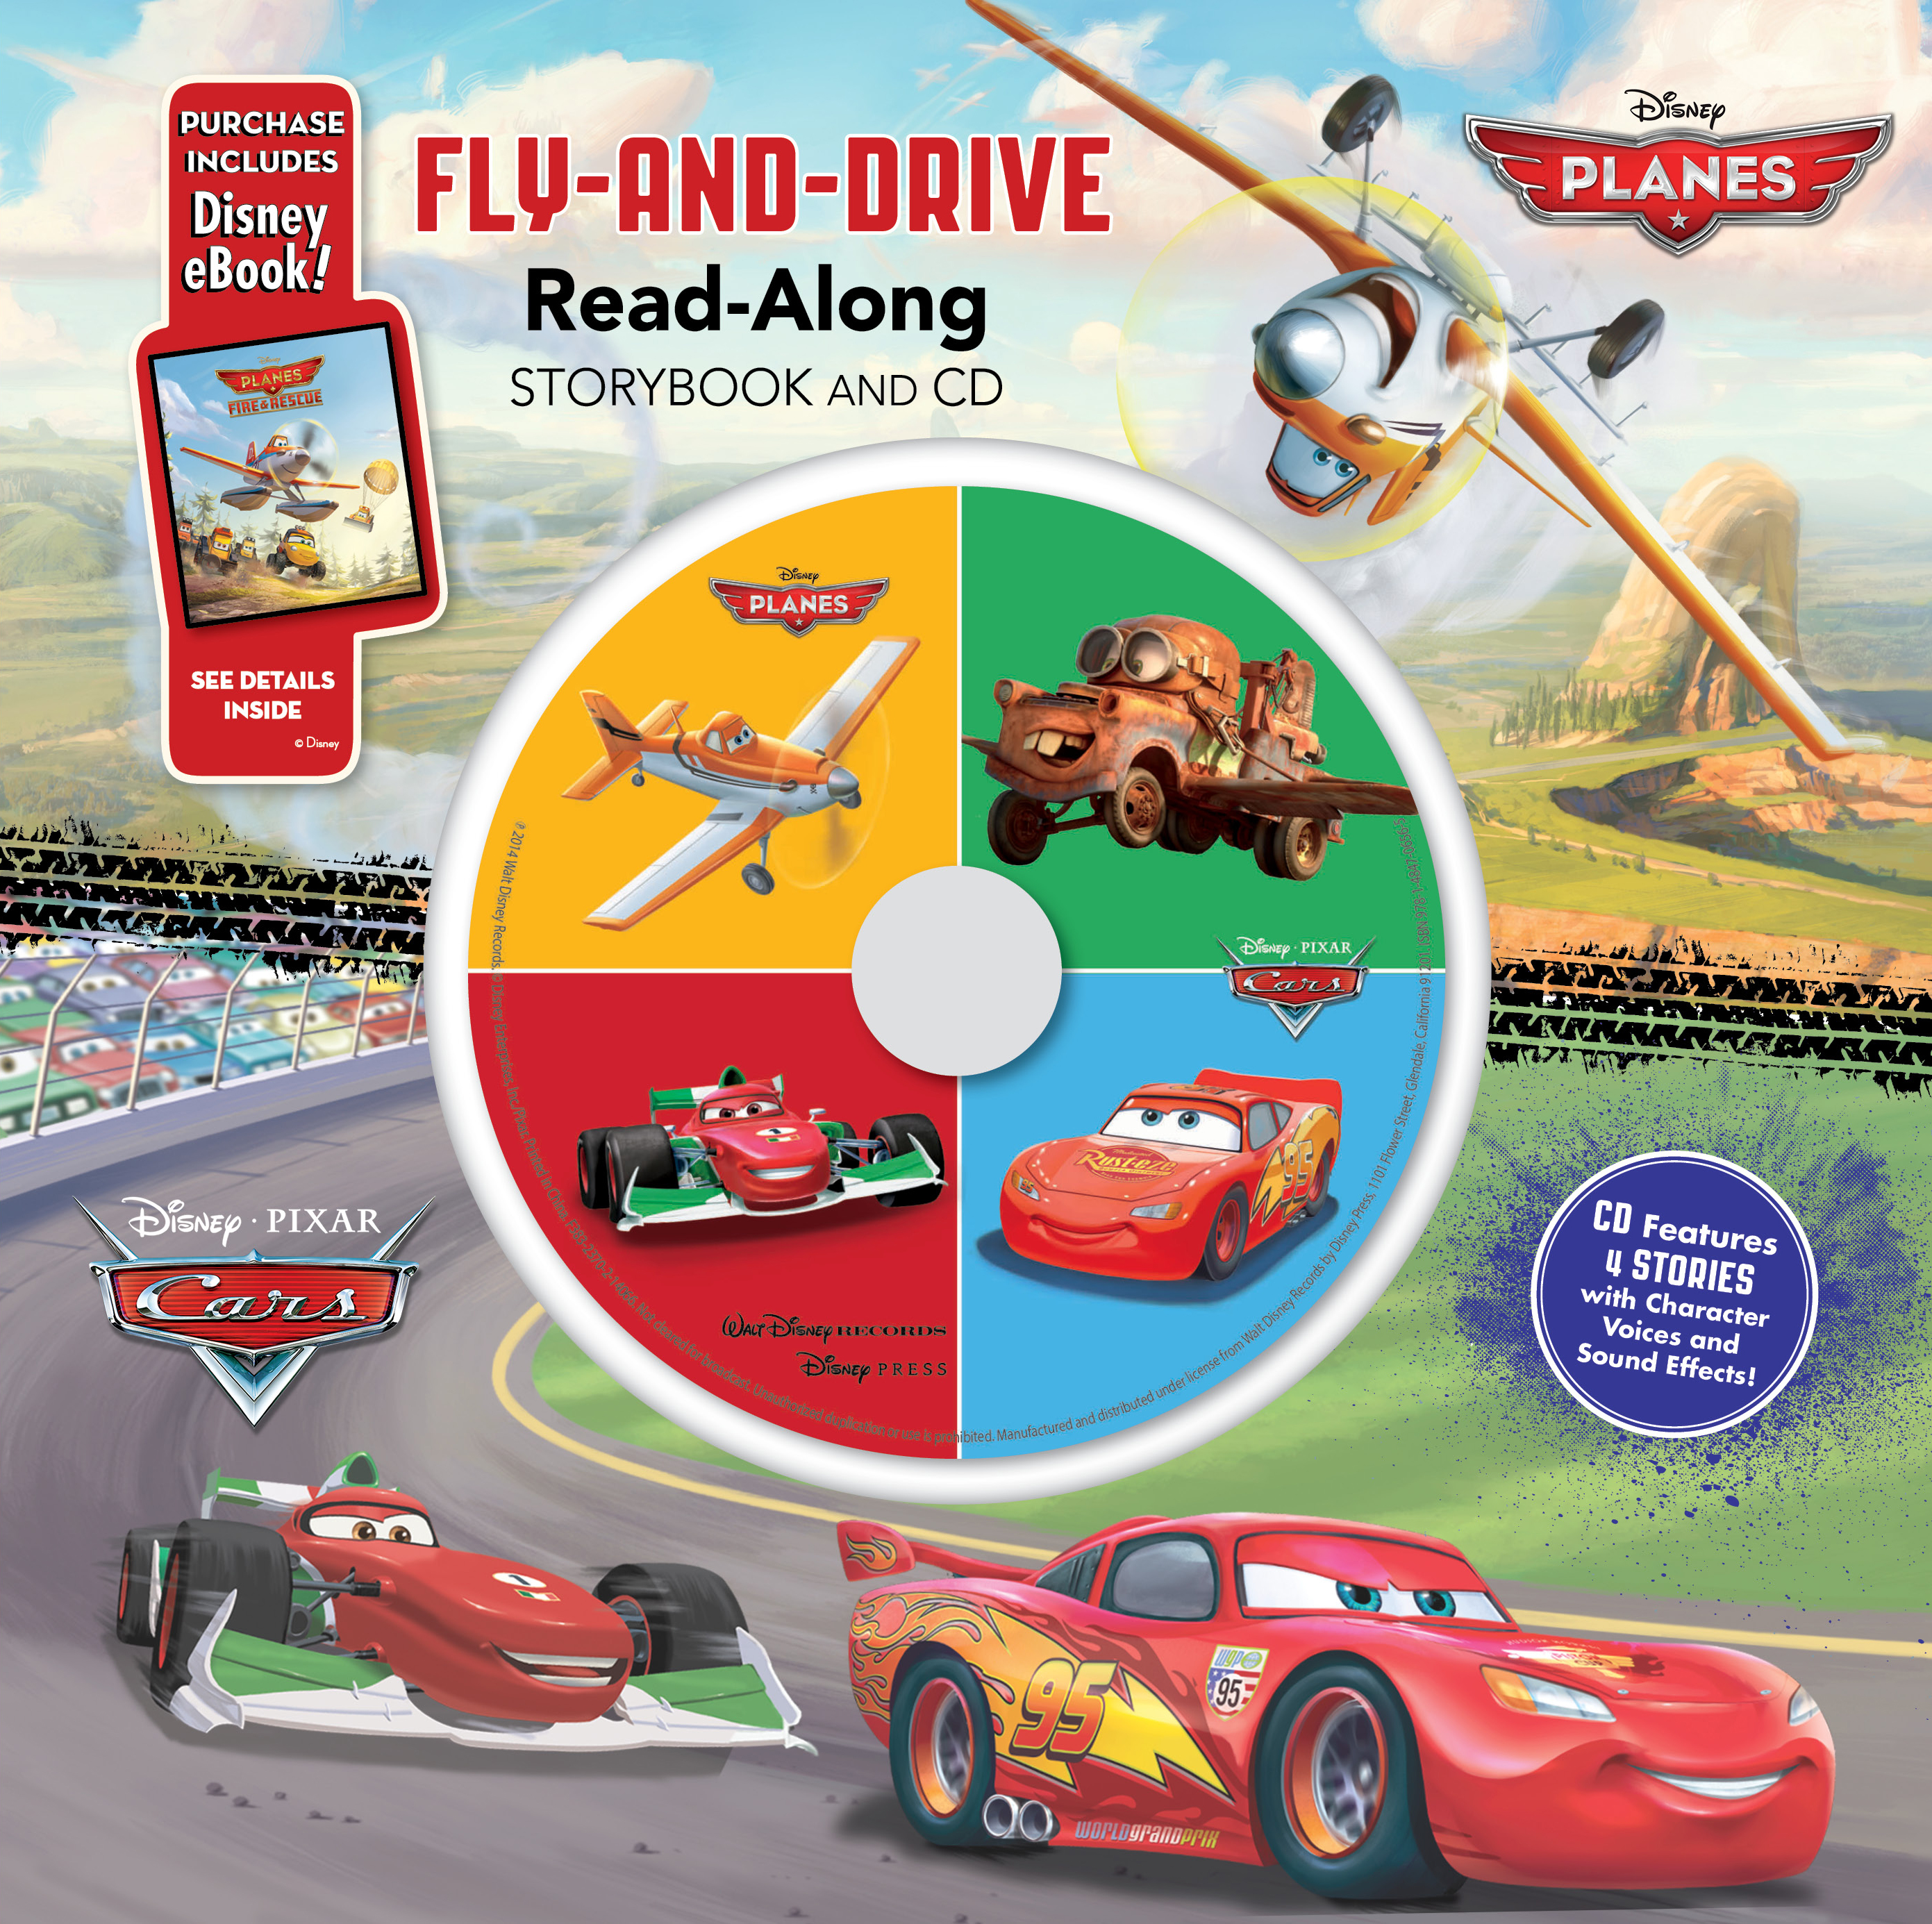 Cars / Planes: Fly-and-Drive Read-Along Storybook and CD | Disney